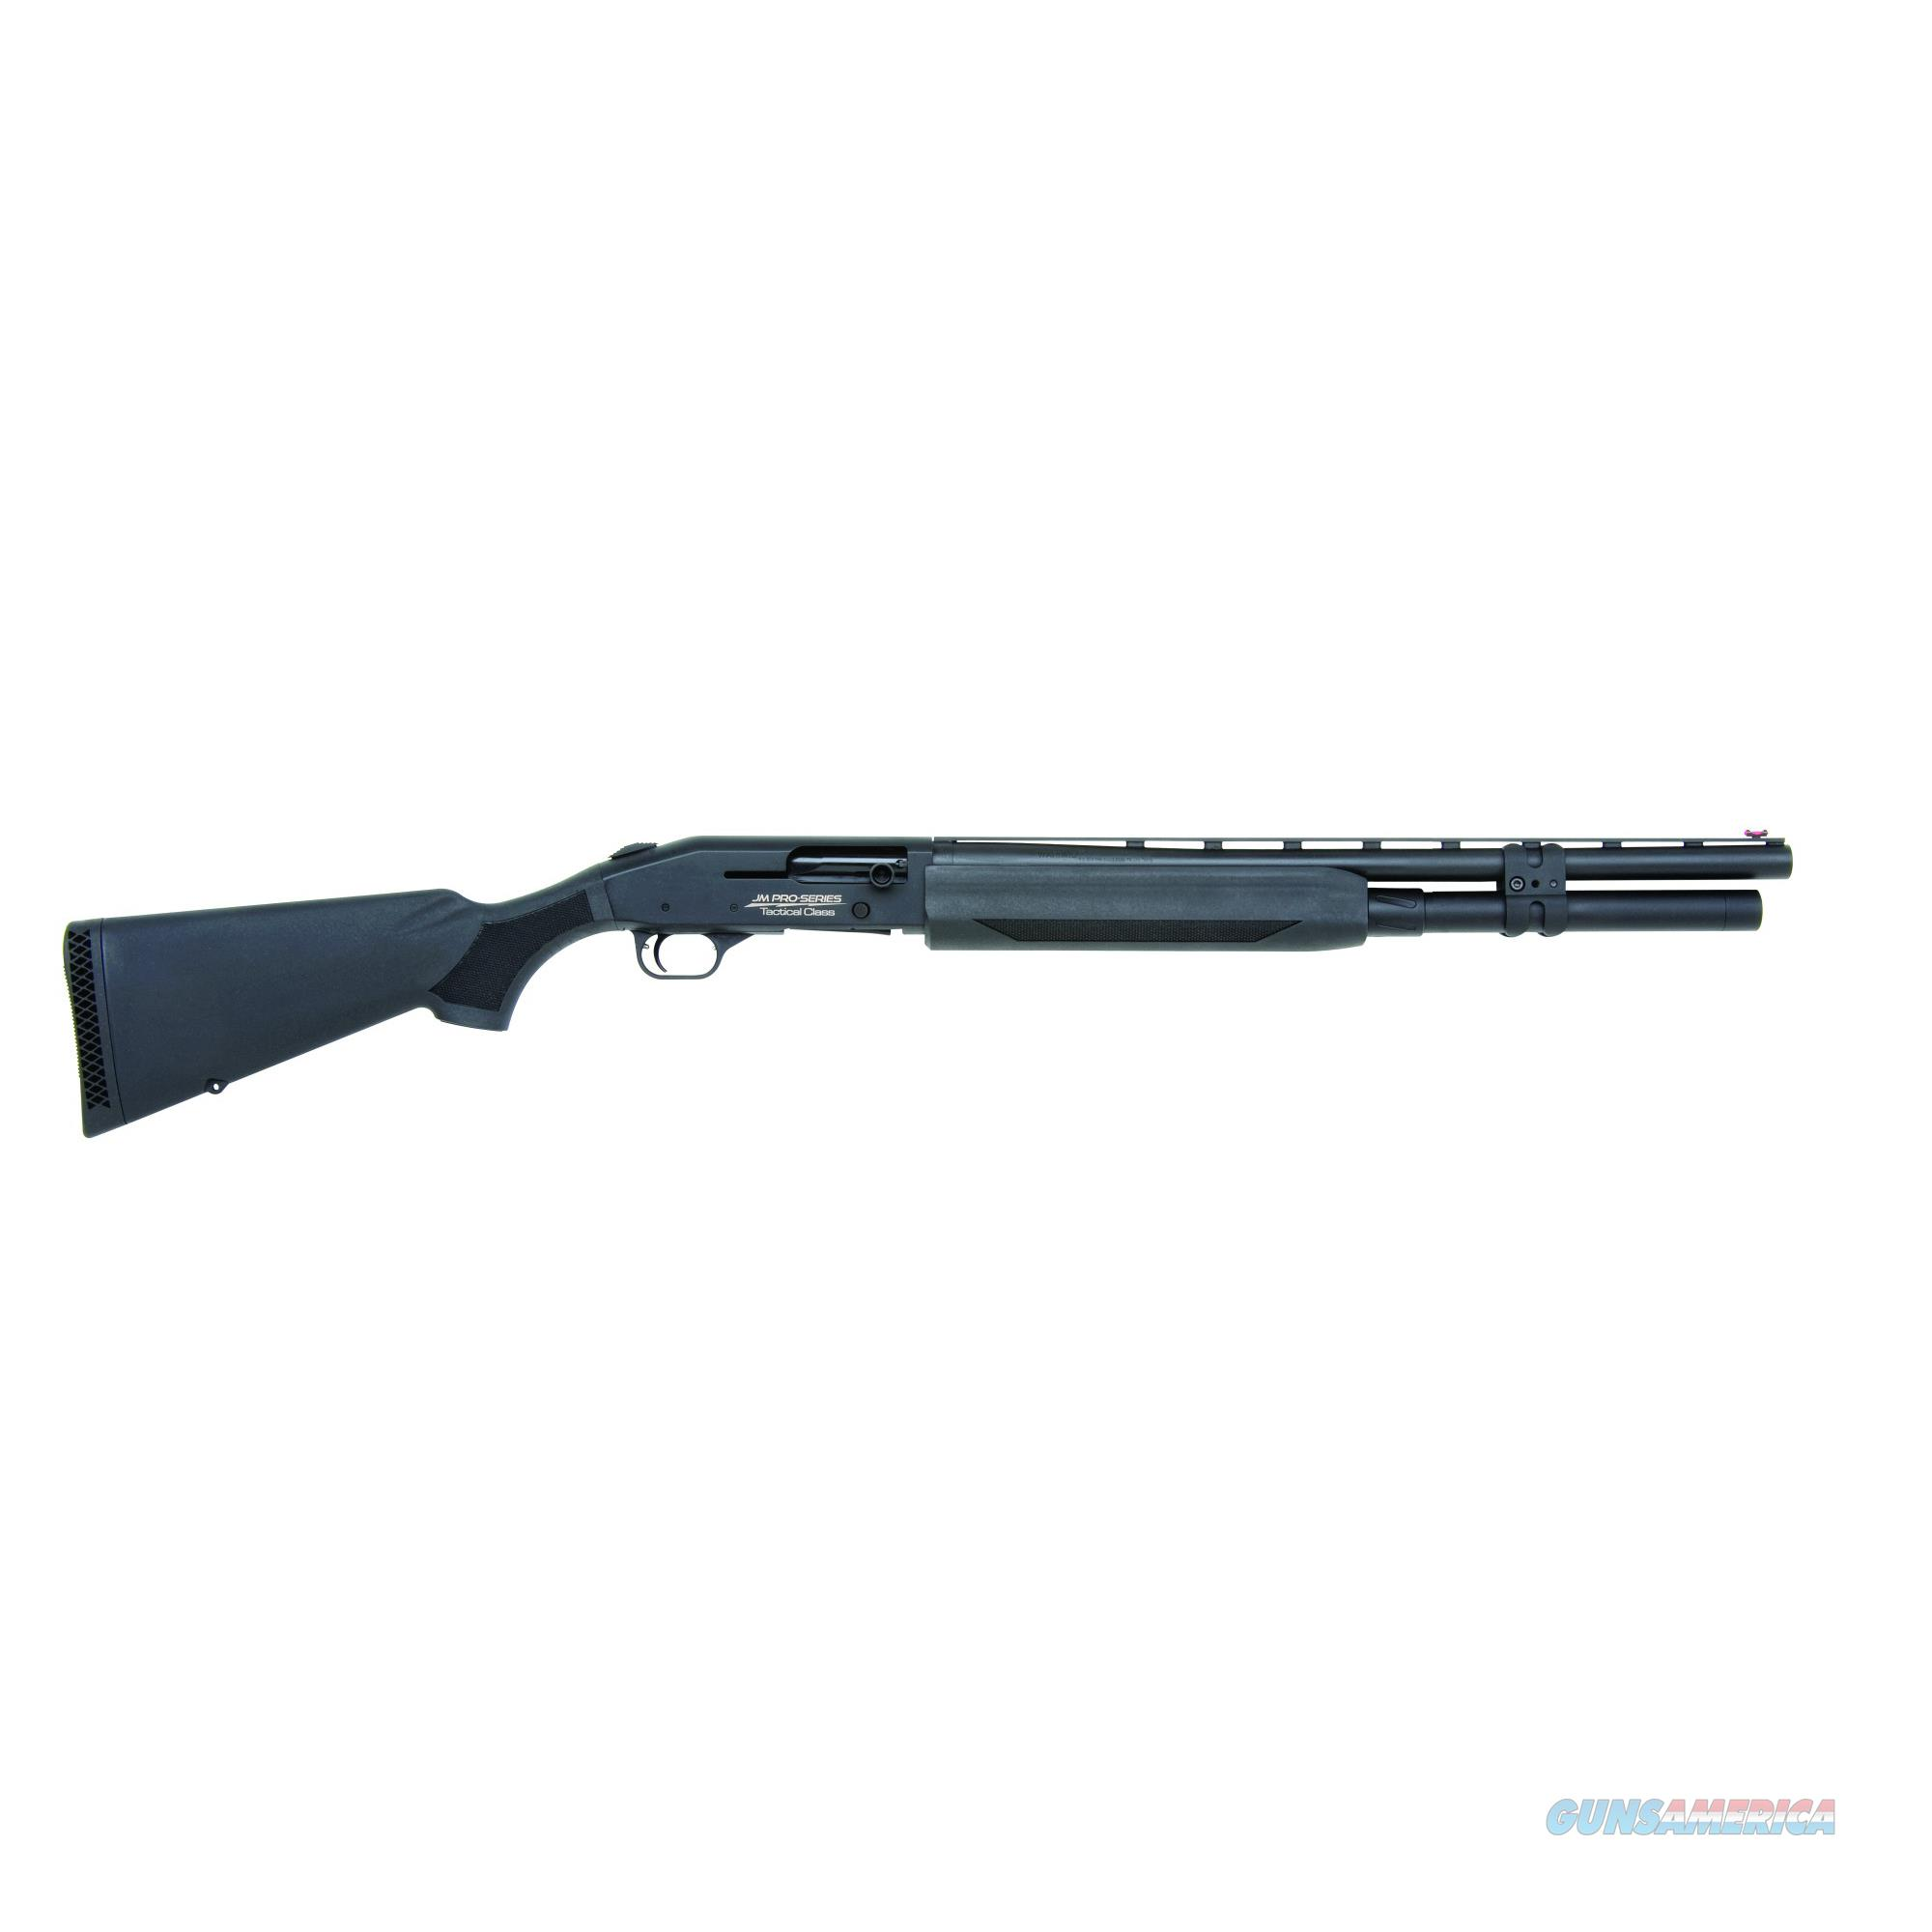 "Mossberg 930 12 ga 22"" 8+1 Black Synthetic Stock - New in Box  Guns > Shotguns > Mossberg Shotguns > Autoloaders"